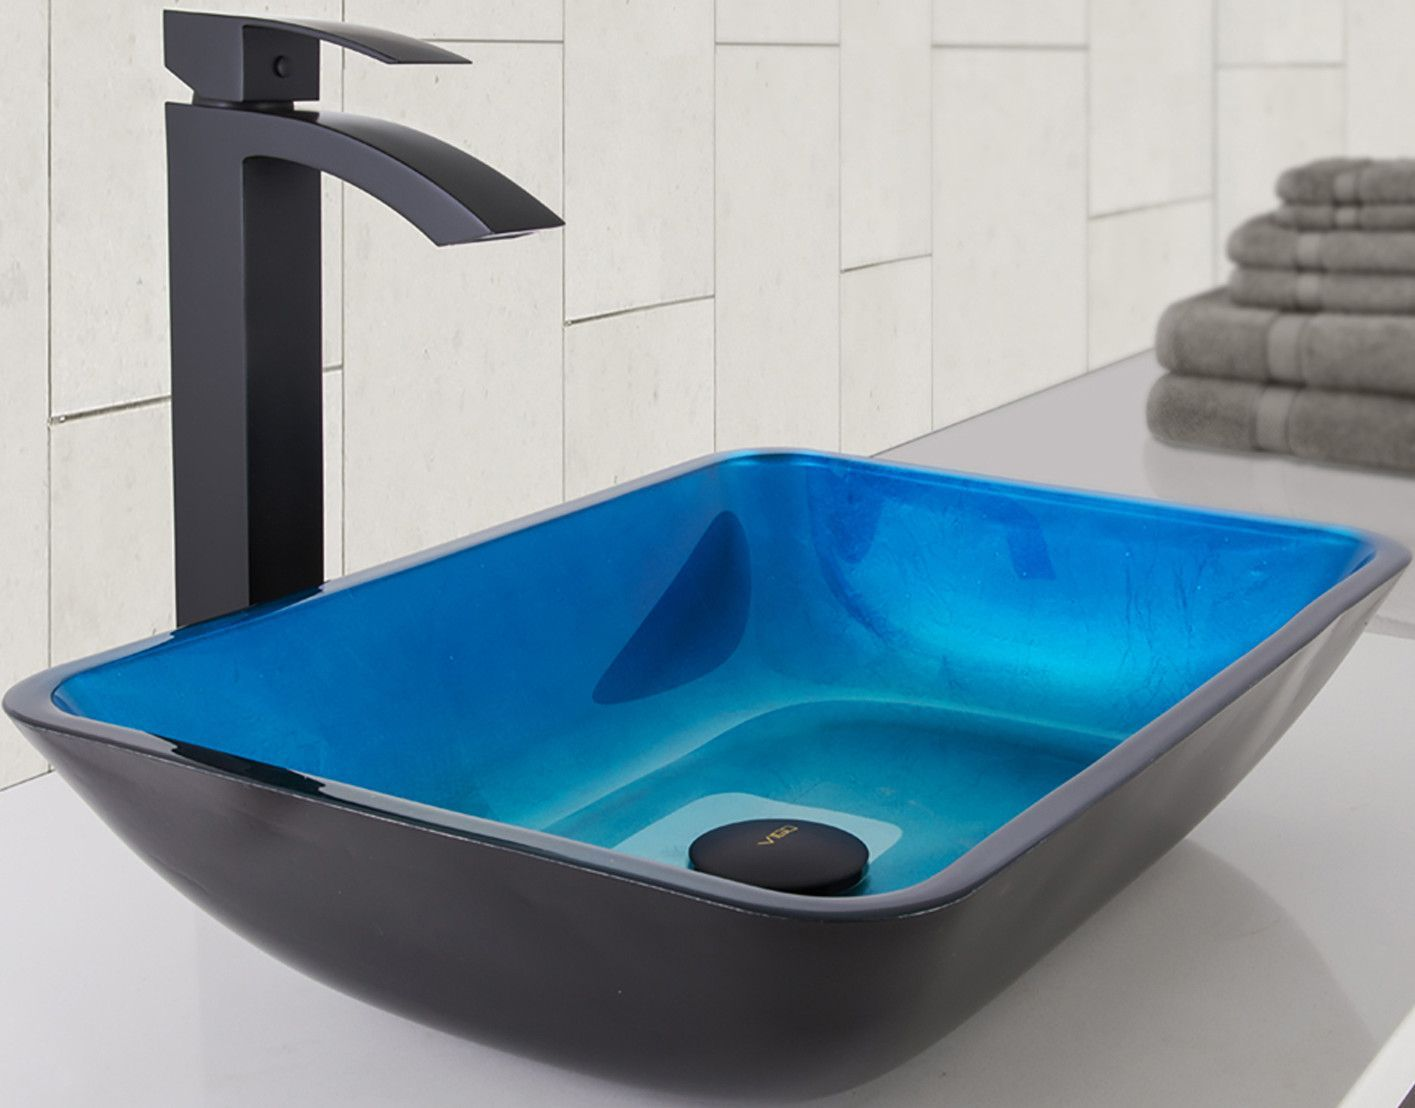 Turquoise Water Solid Textured Black Tempered Glass Rectangular Vessel Bathroom Sink With Faucet Sink Rectangular Vessel Sink Vessel Faucets